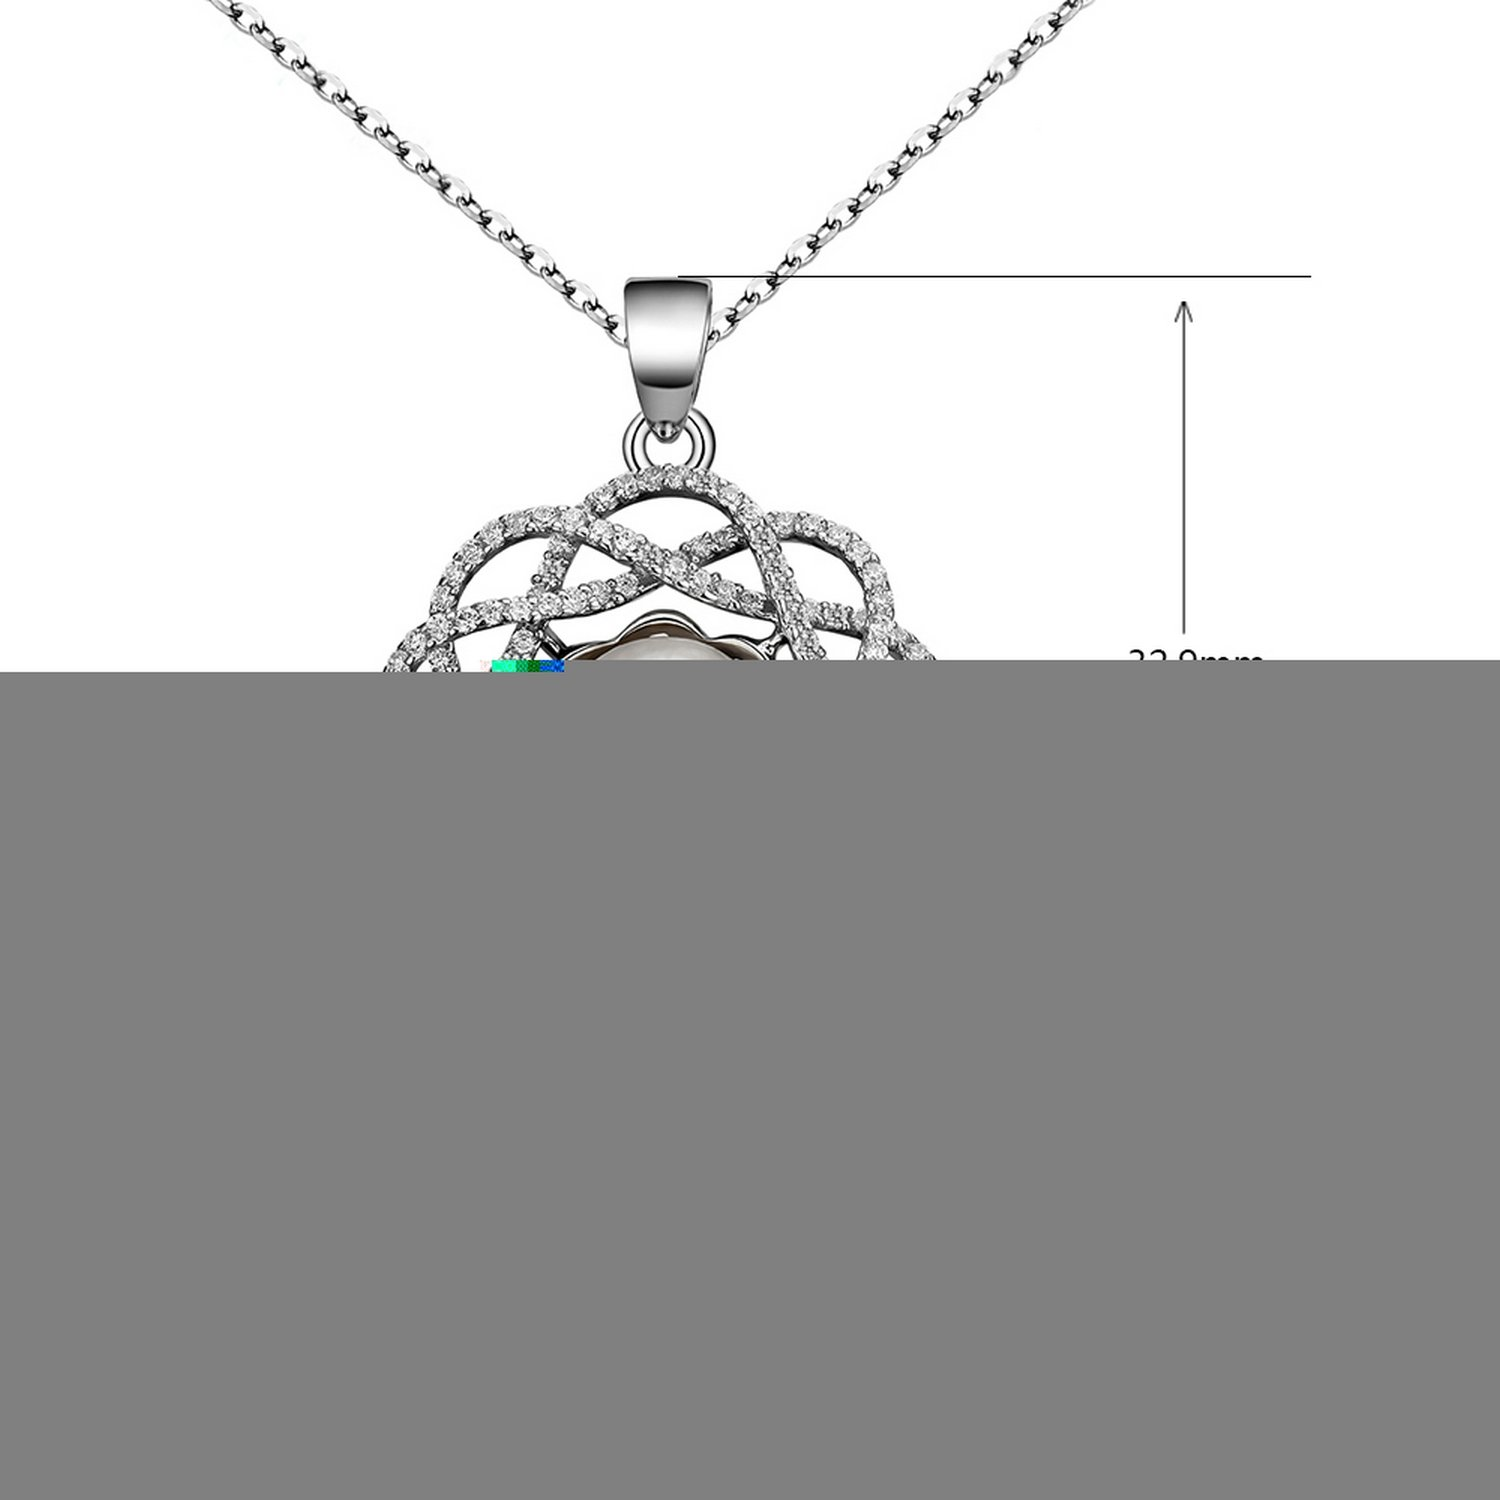 MMC Pearl Flower Hollow Jewelry Silver Pendants Necklaces